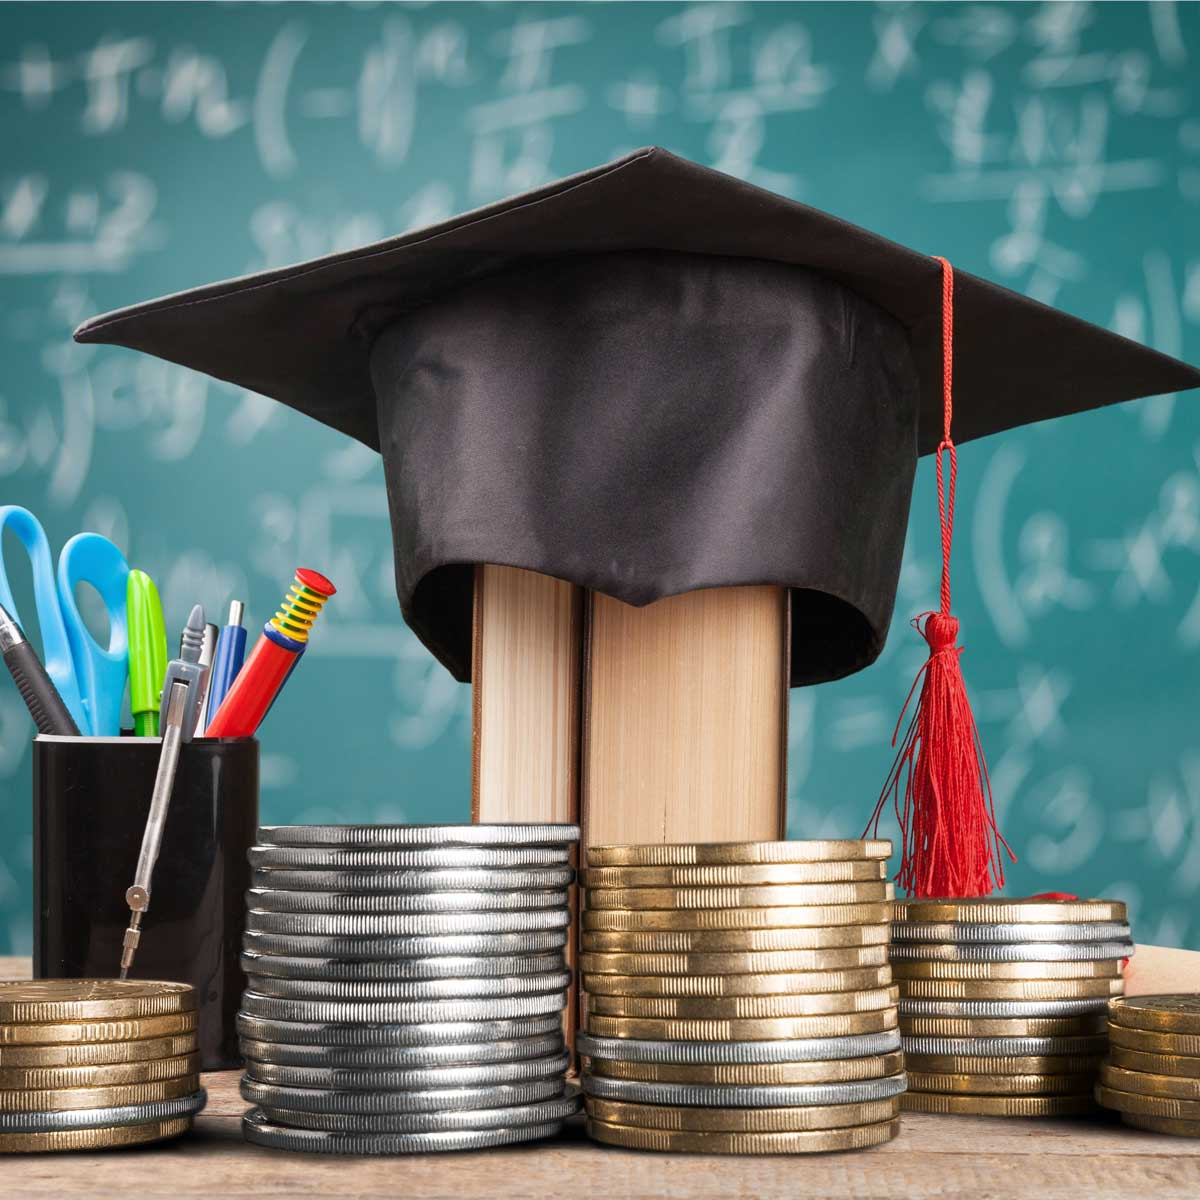 debt loan student academic background banking